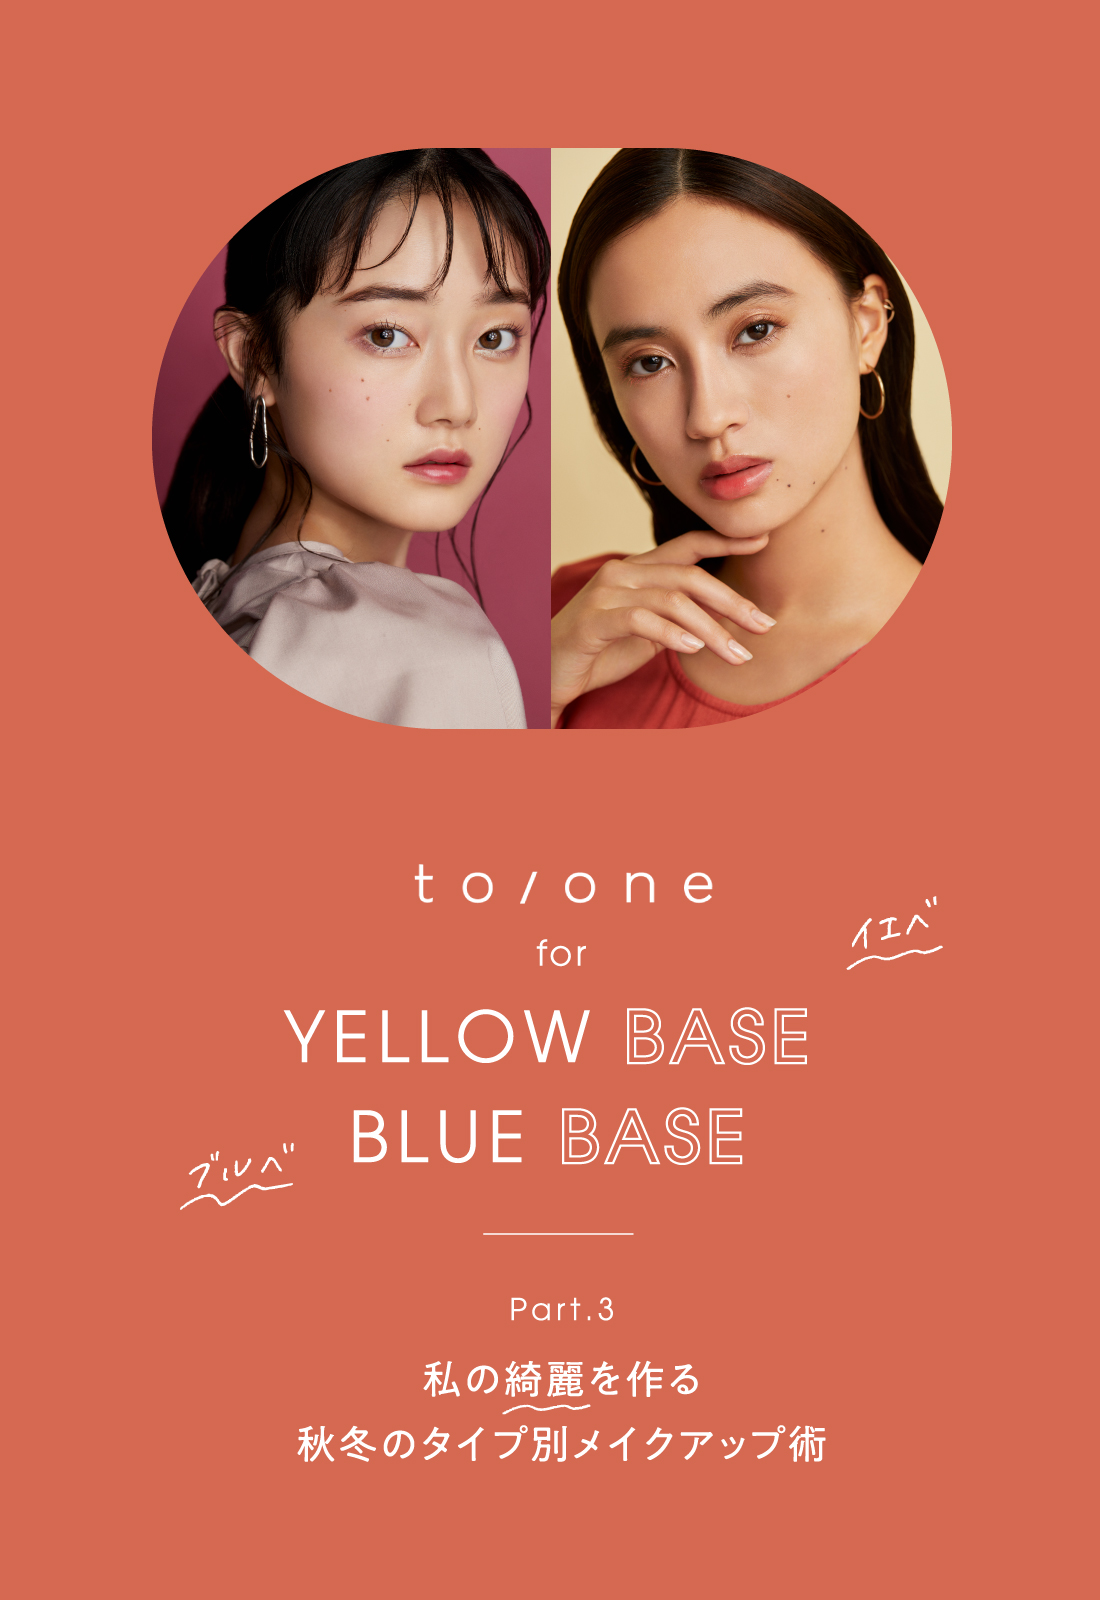 to/one for YELLOW BASE BLUE BASE